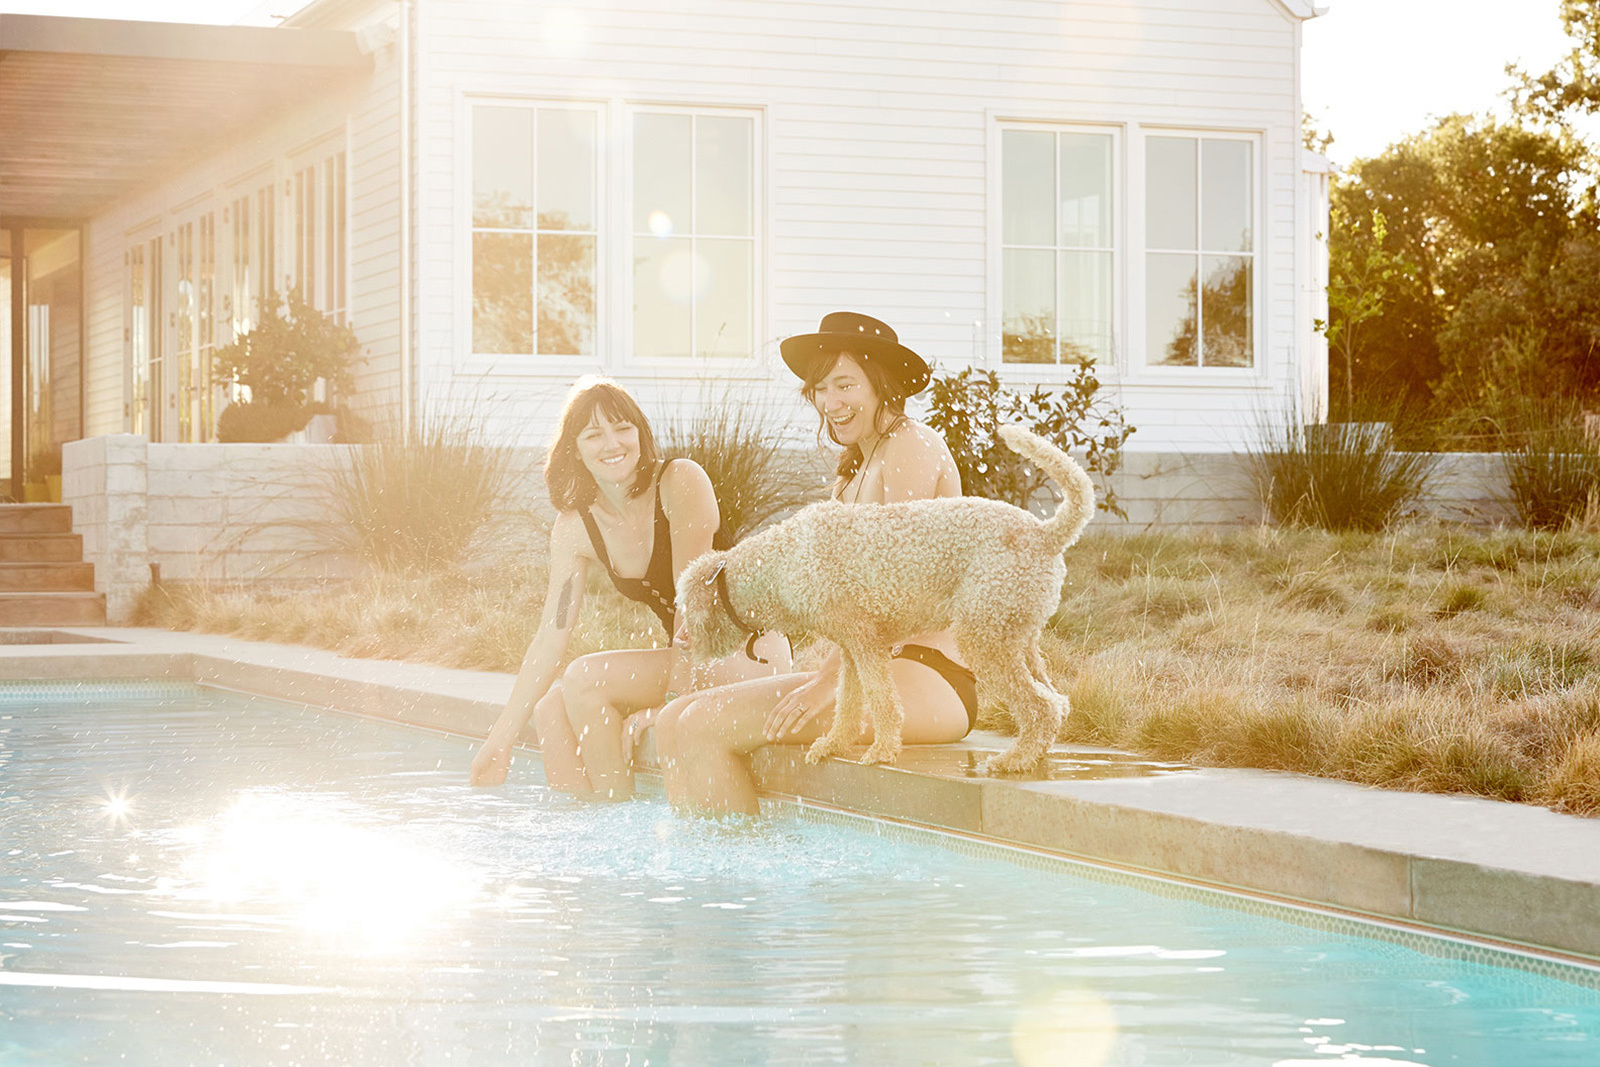 Friends poolside with dog laughing  | Dovis Bird Agency Photography